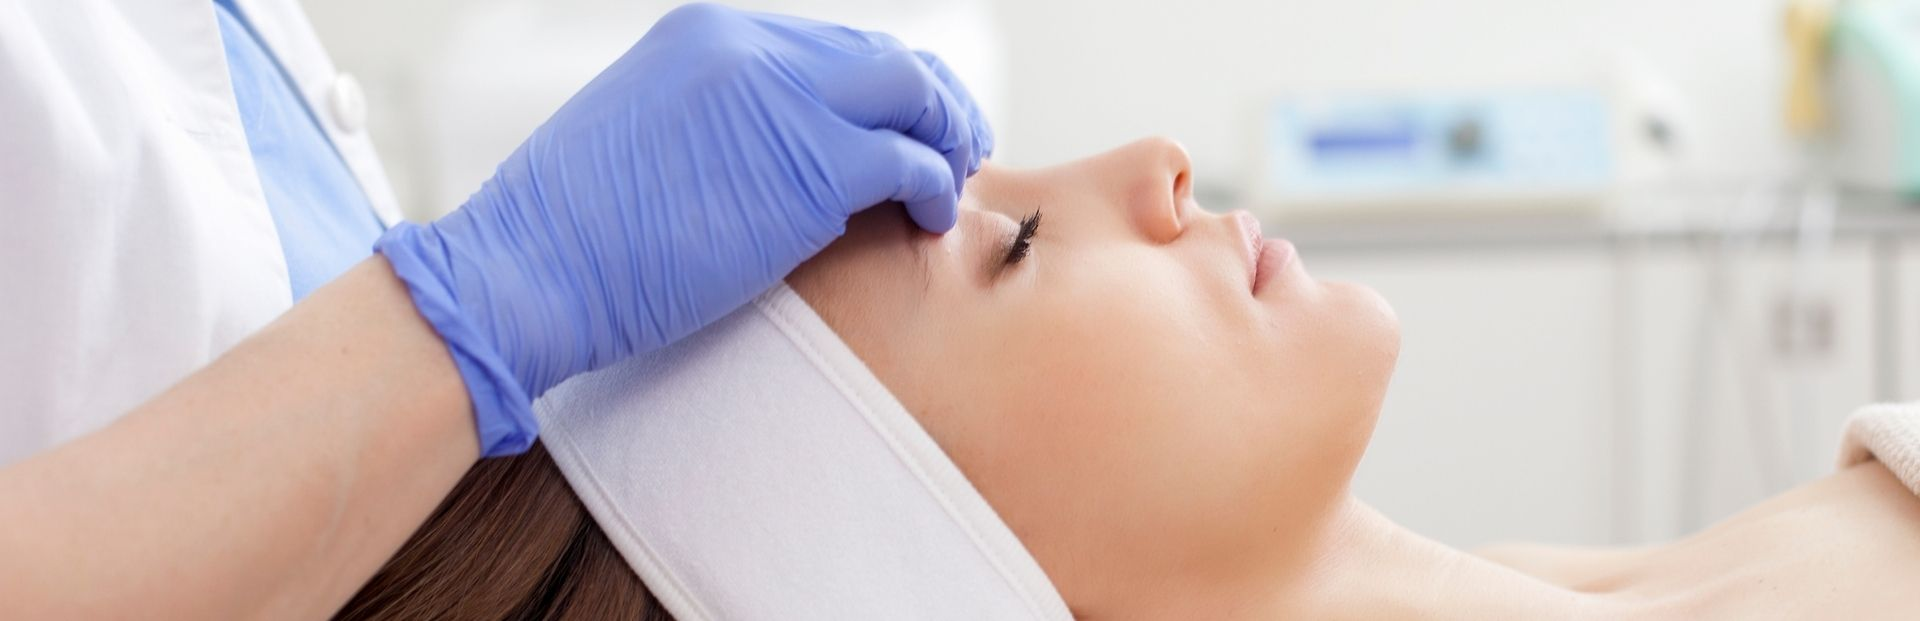 Banner Image | Afterglow Skin Care Clinic